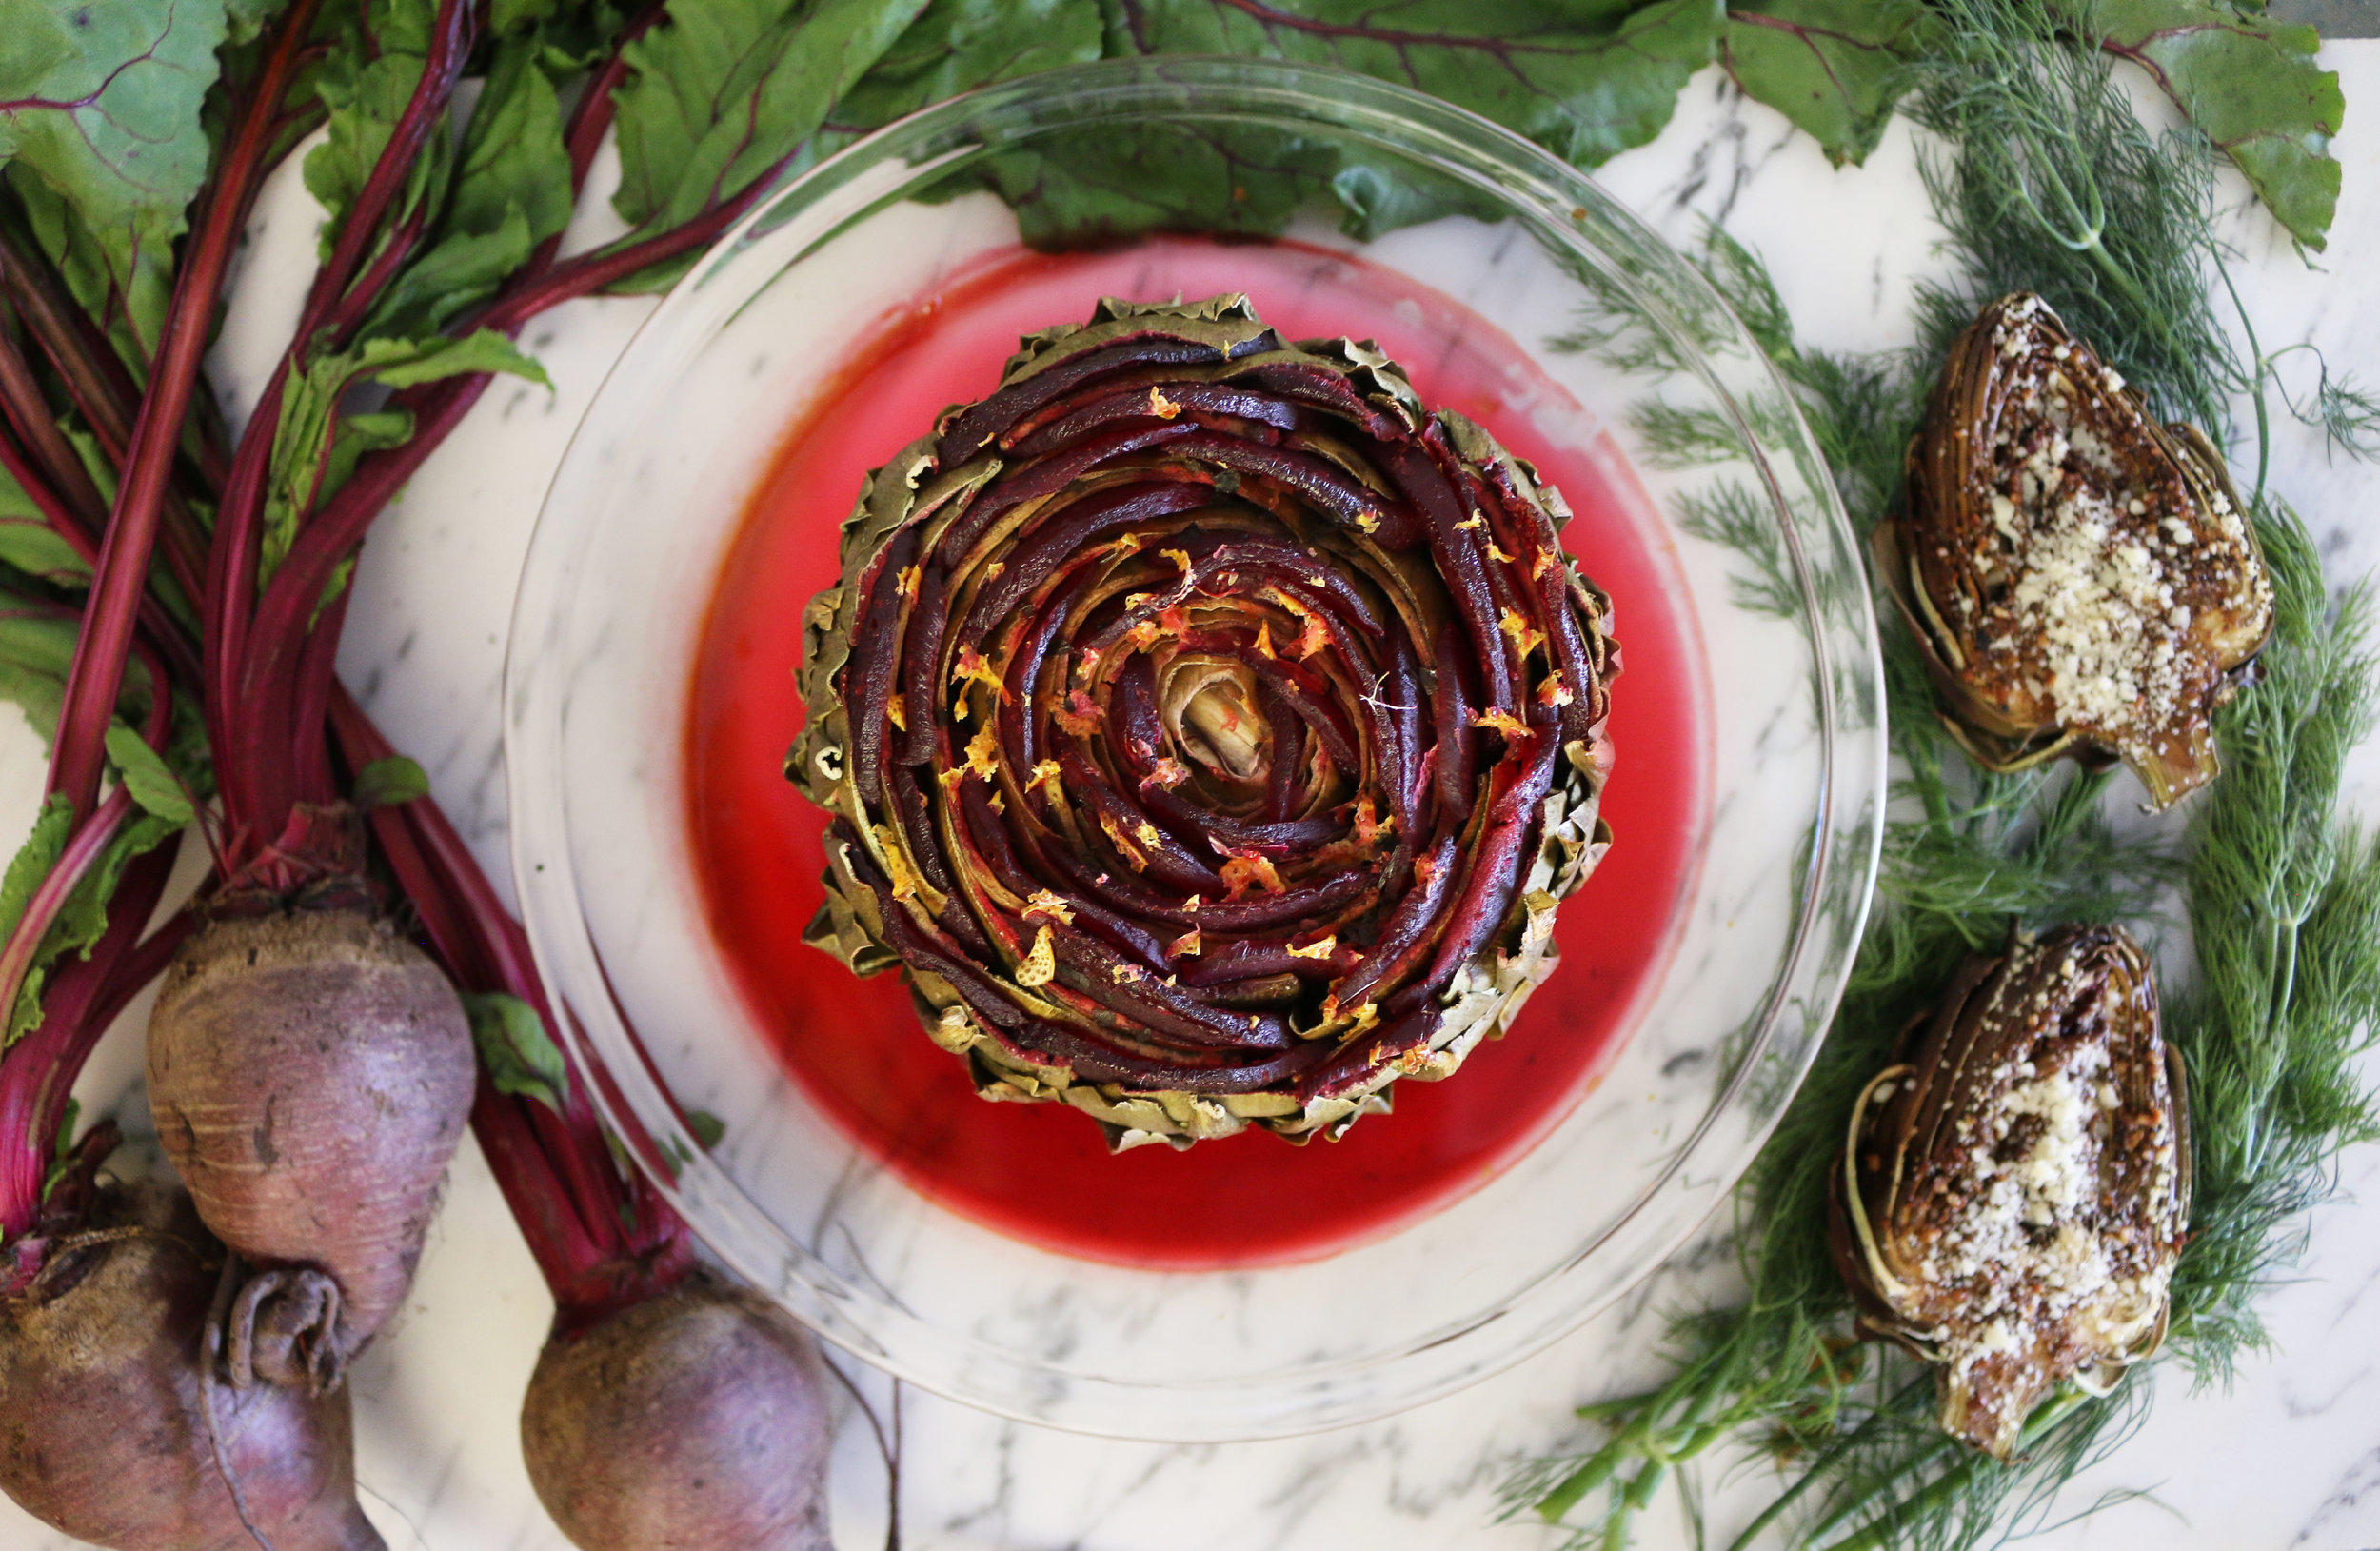 Baked Artichoke and beet rose-CulinaryWitch